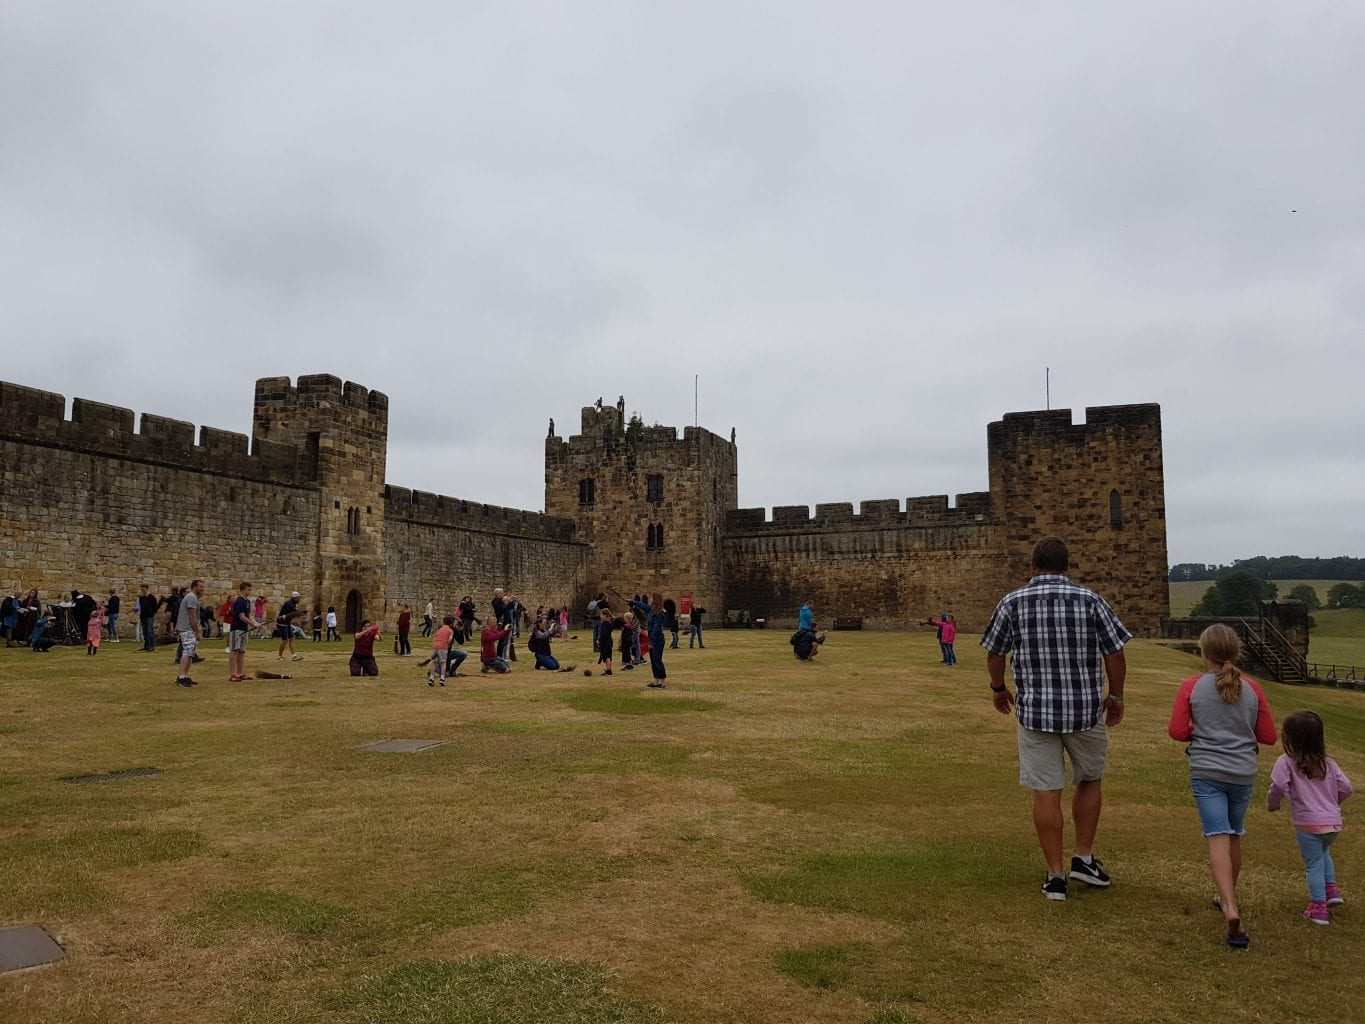 Broomstick flying lessons by Hogwarts Professors at Alnwick Castle